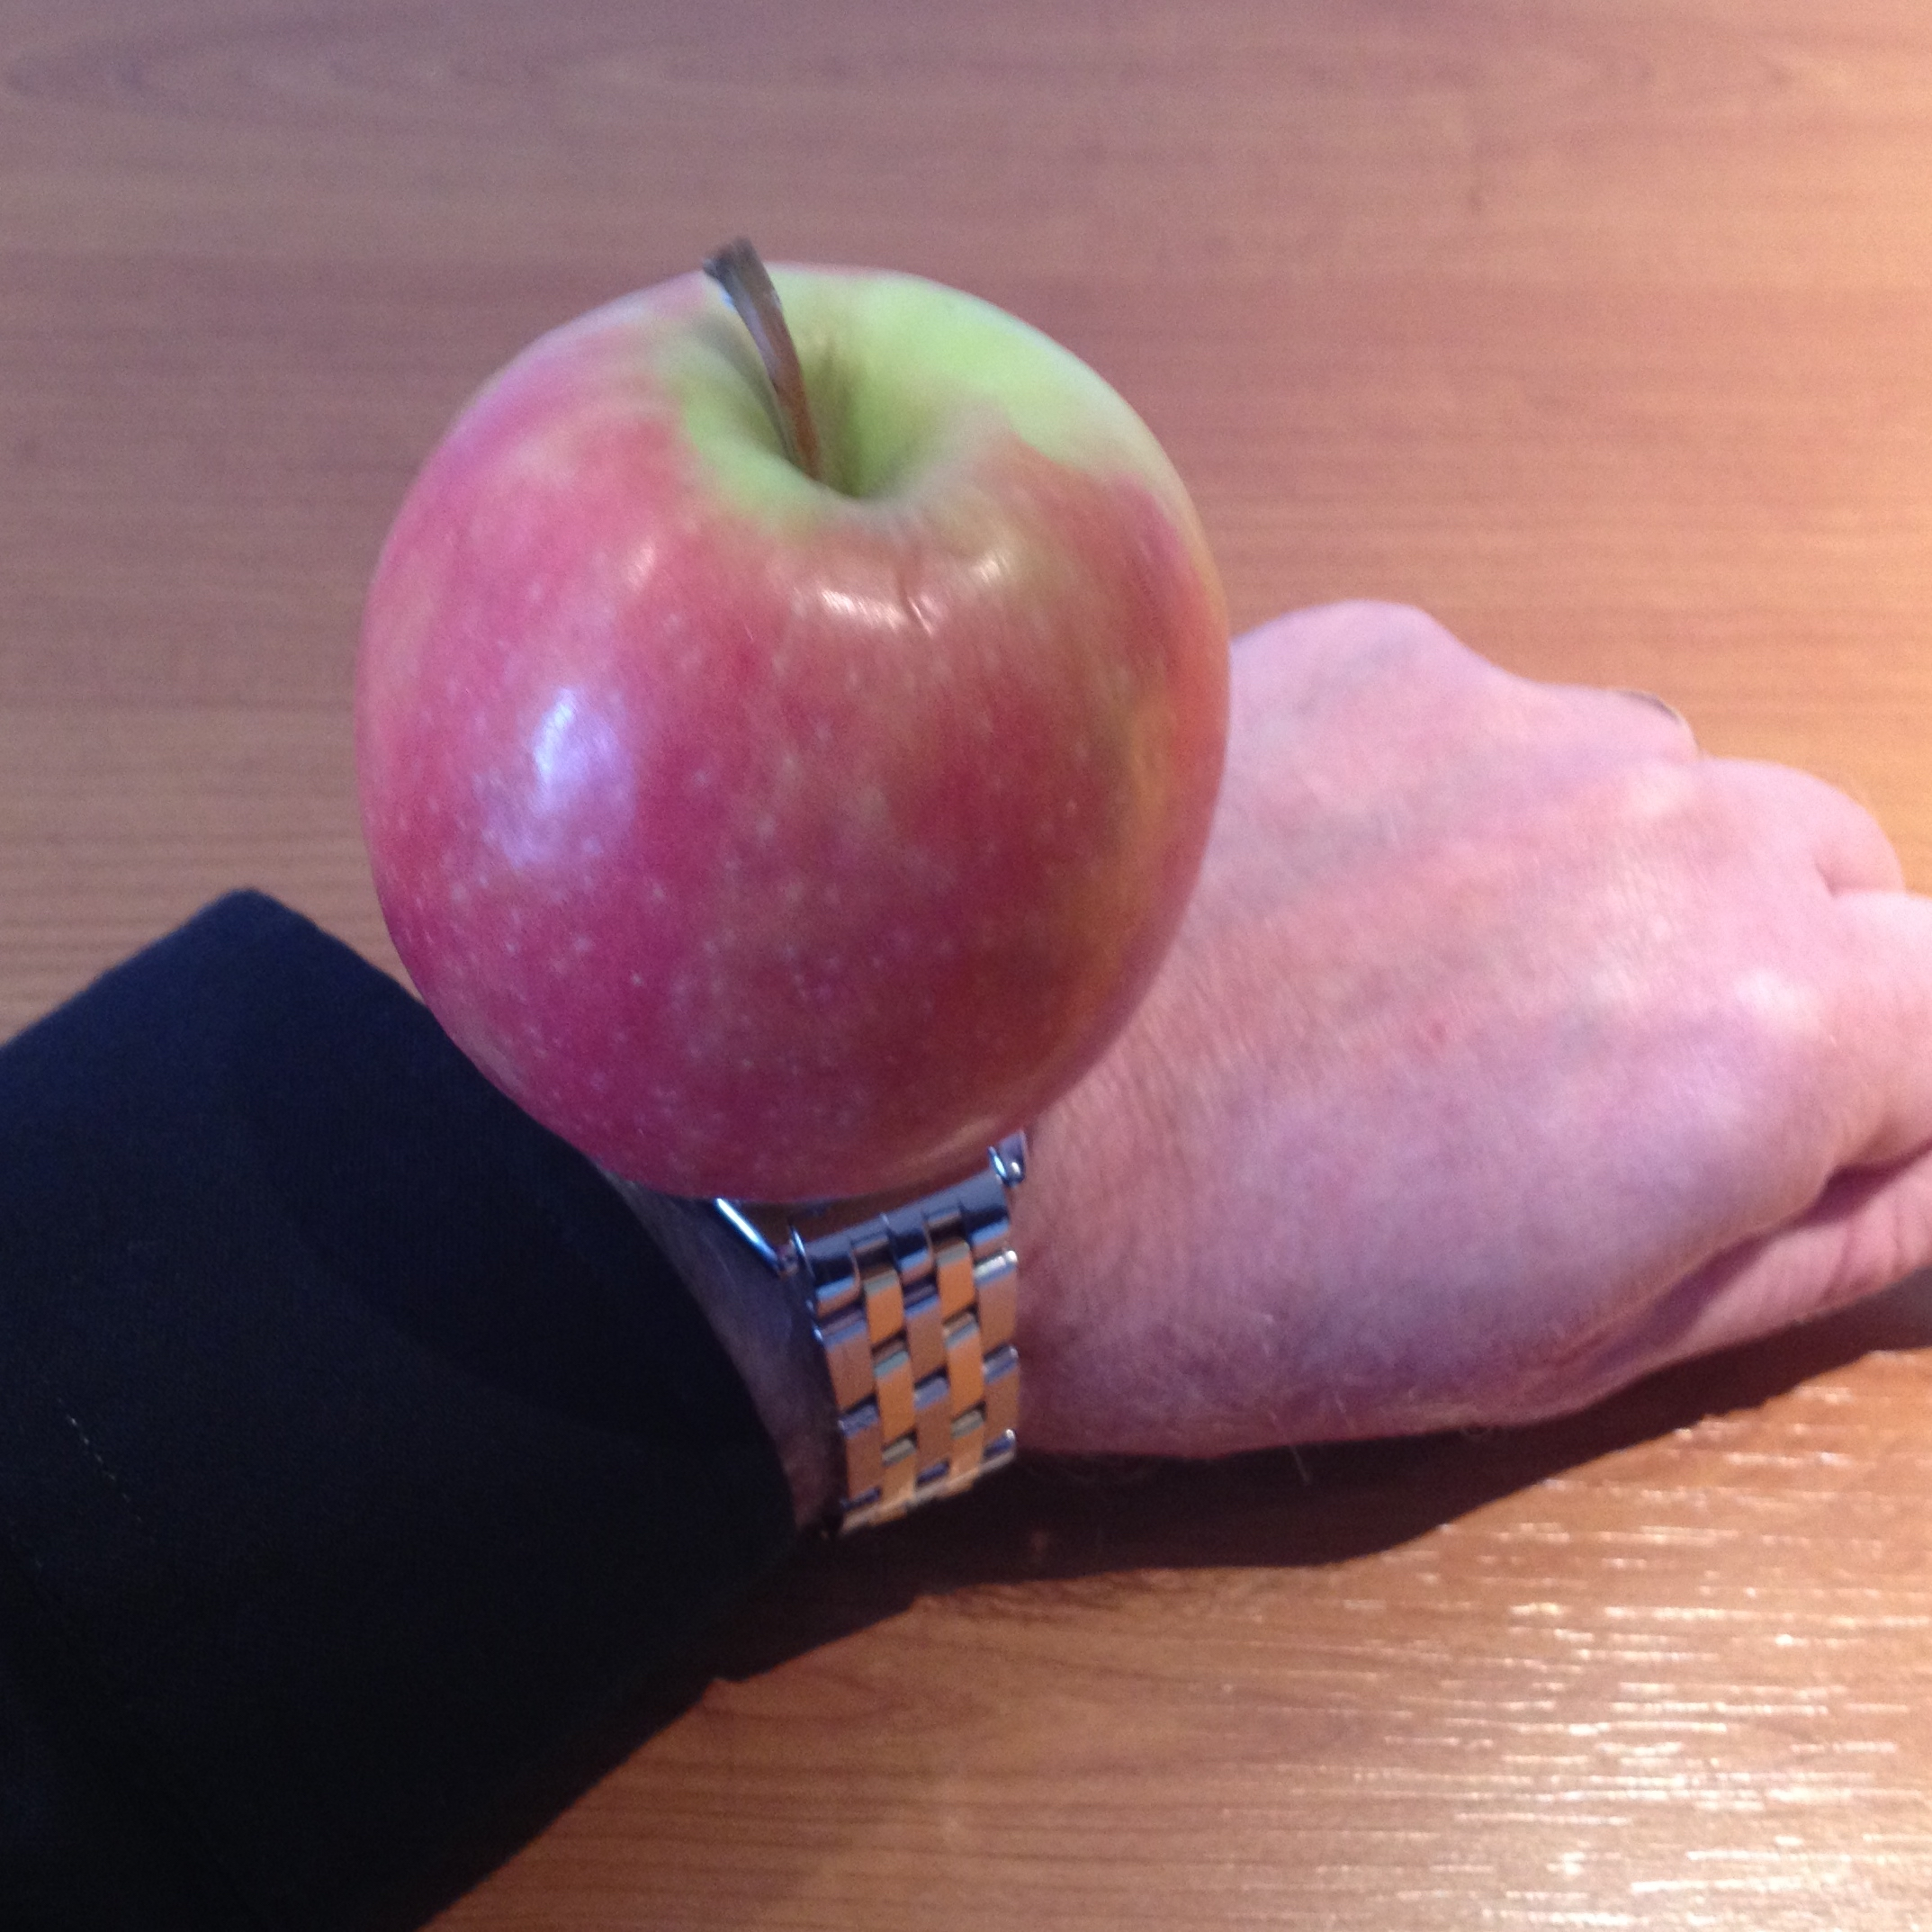 A photograpgh of my lower left arm in a black shirt with a red and green apple sitting on top of a traditional watch to appear I am wearing an apple on a watchband